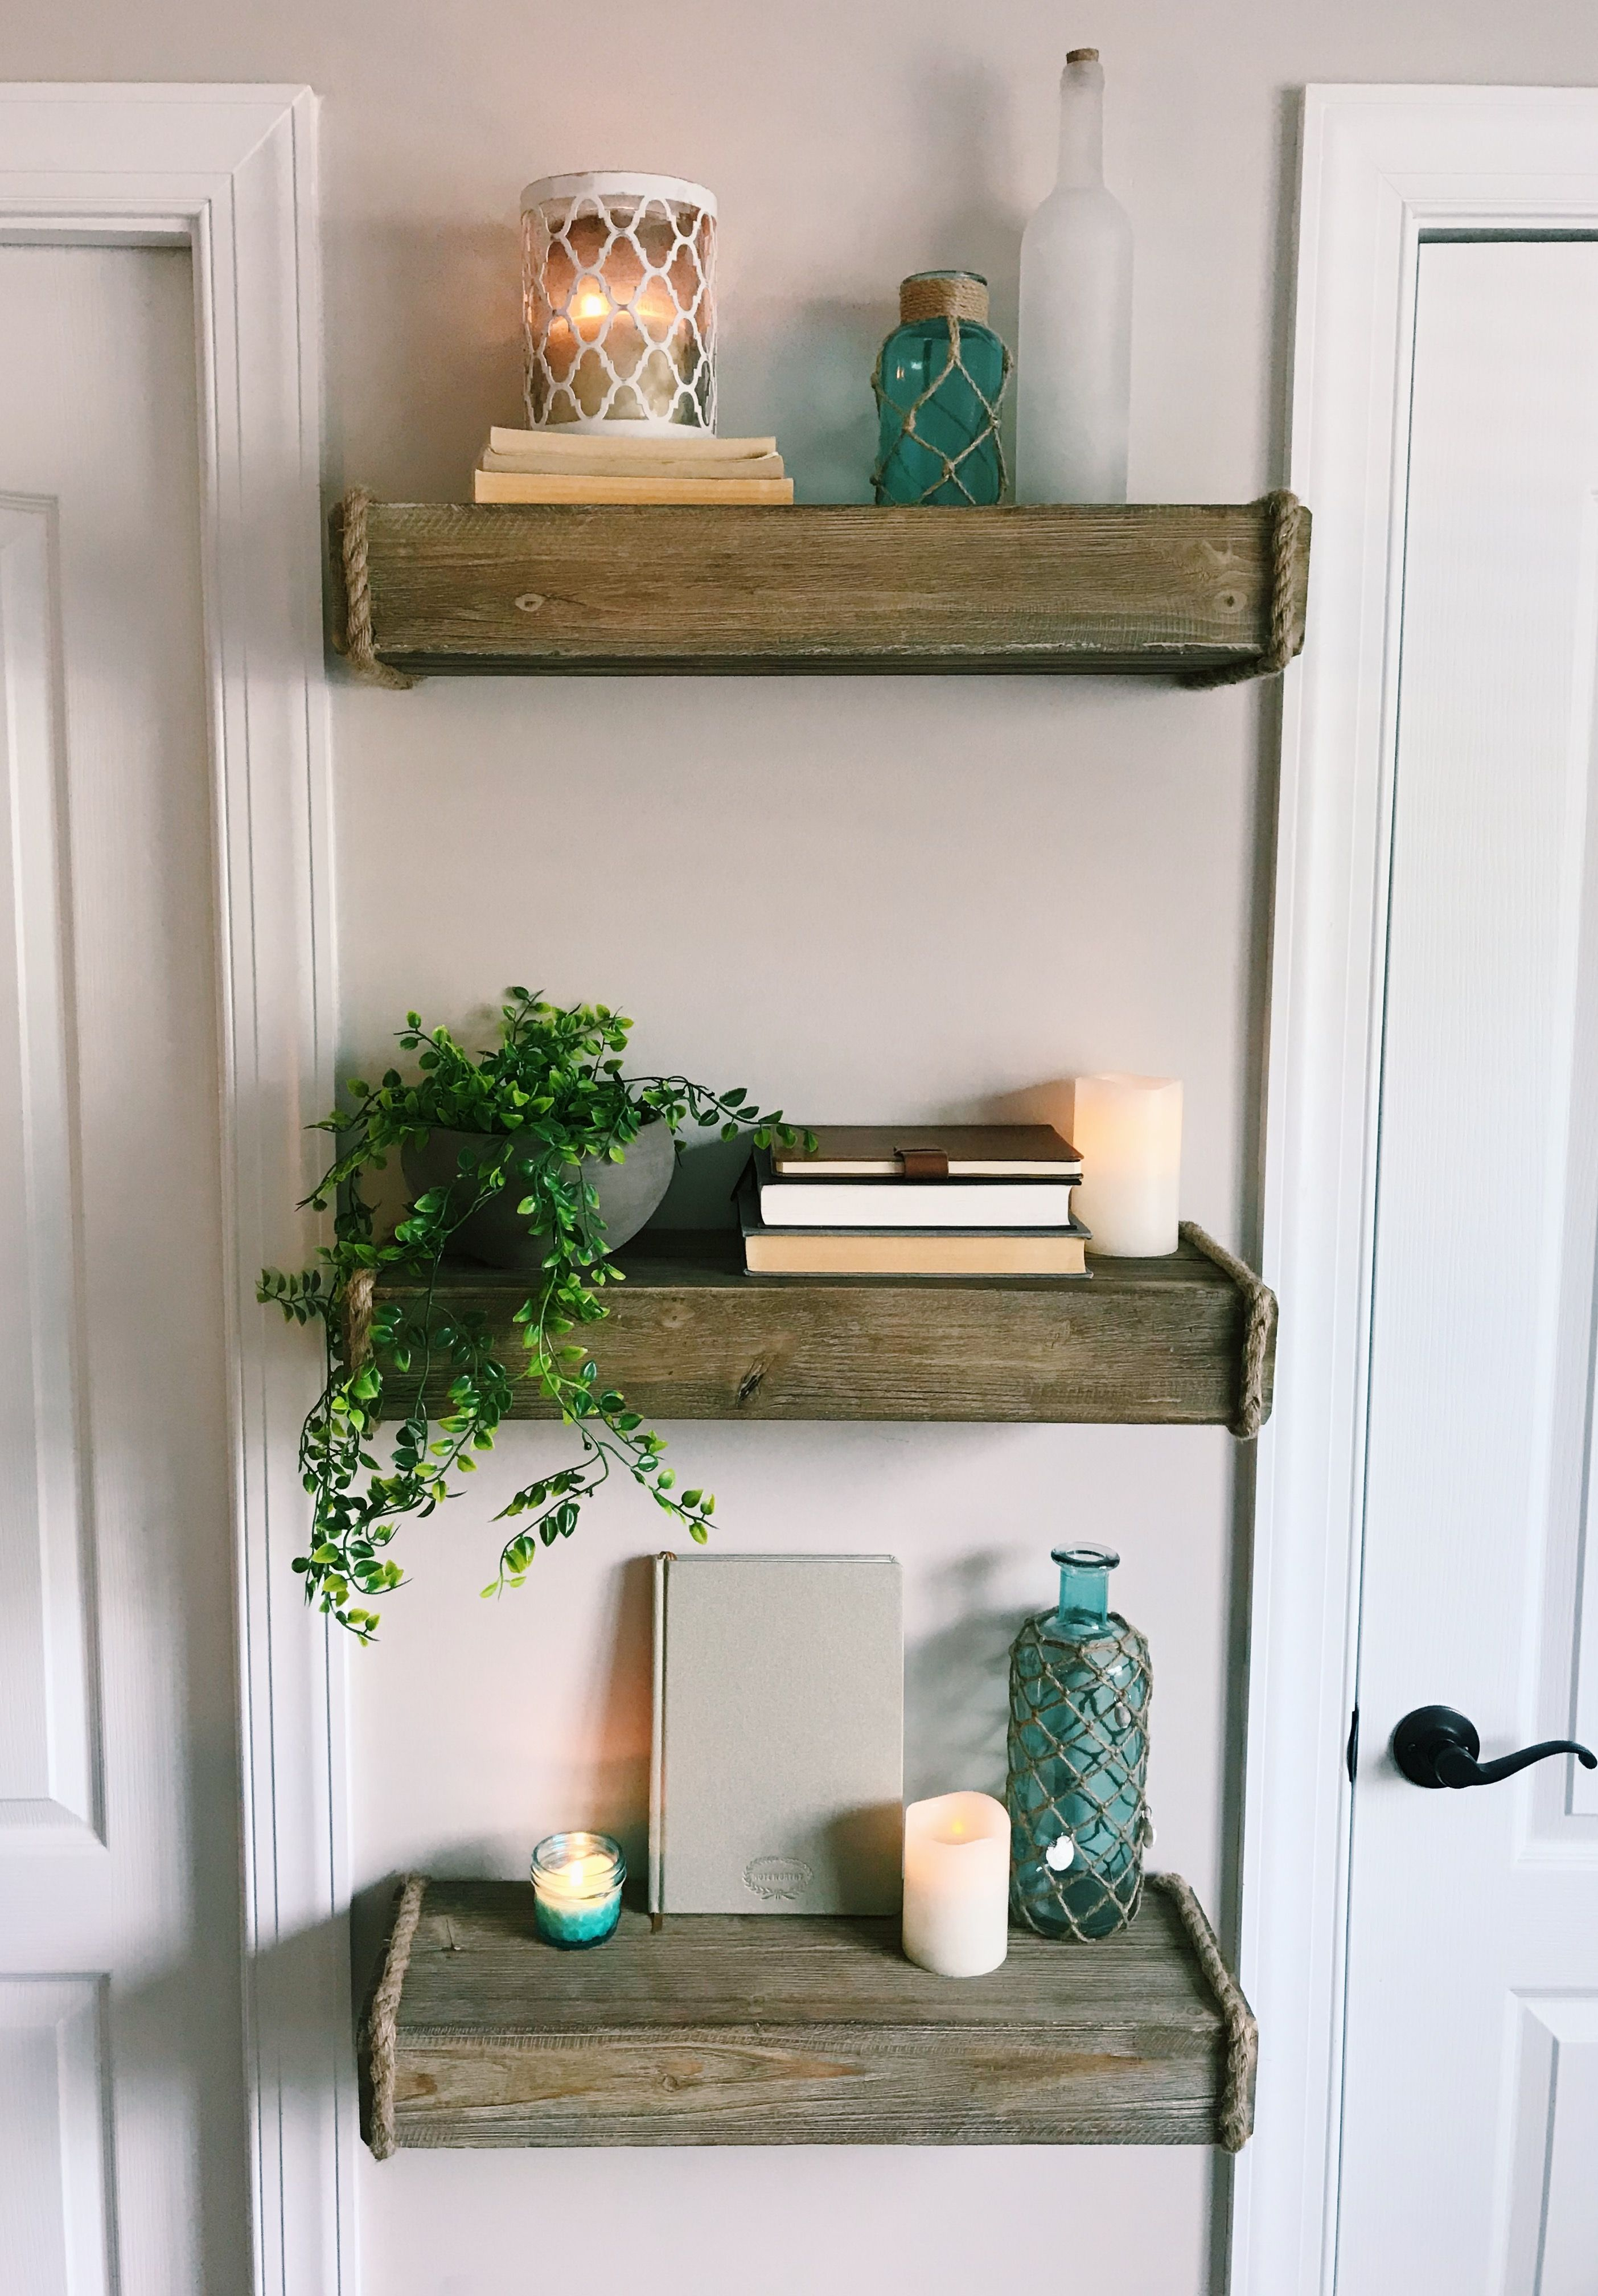 Rustic Fixer Upper Floating Shelves with Coastal Cottage ...